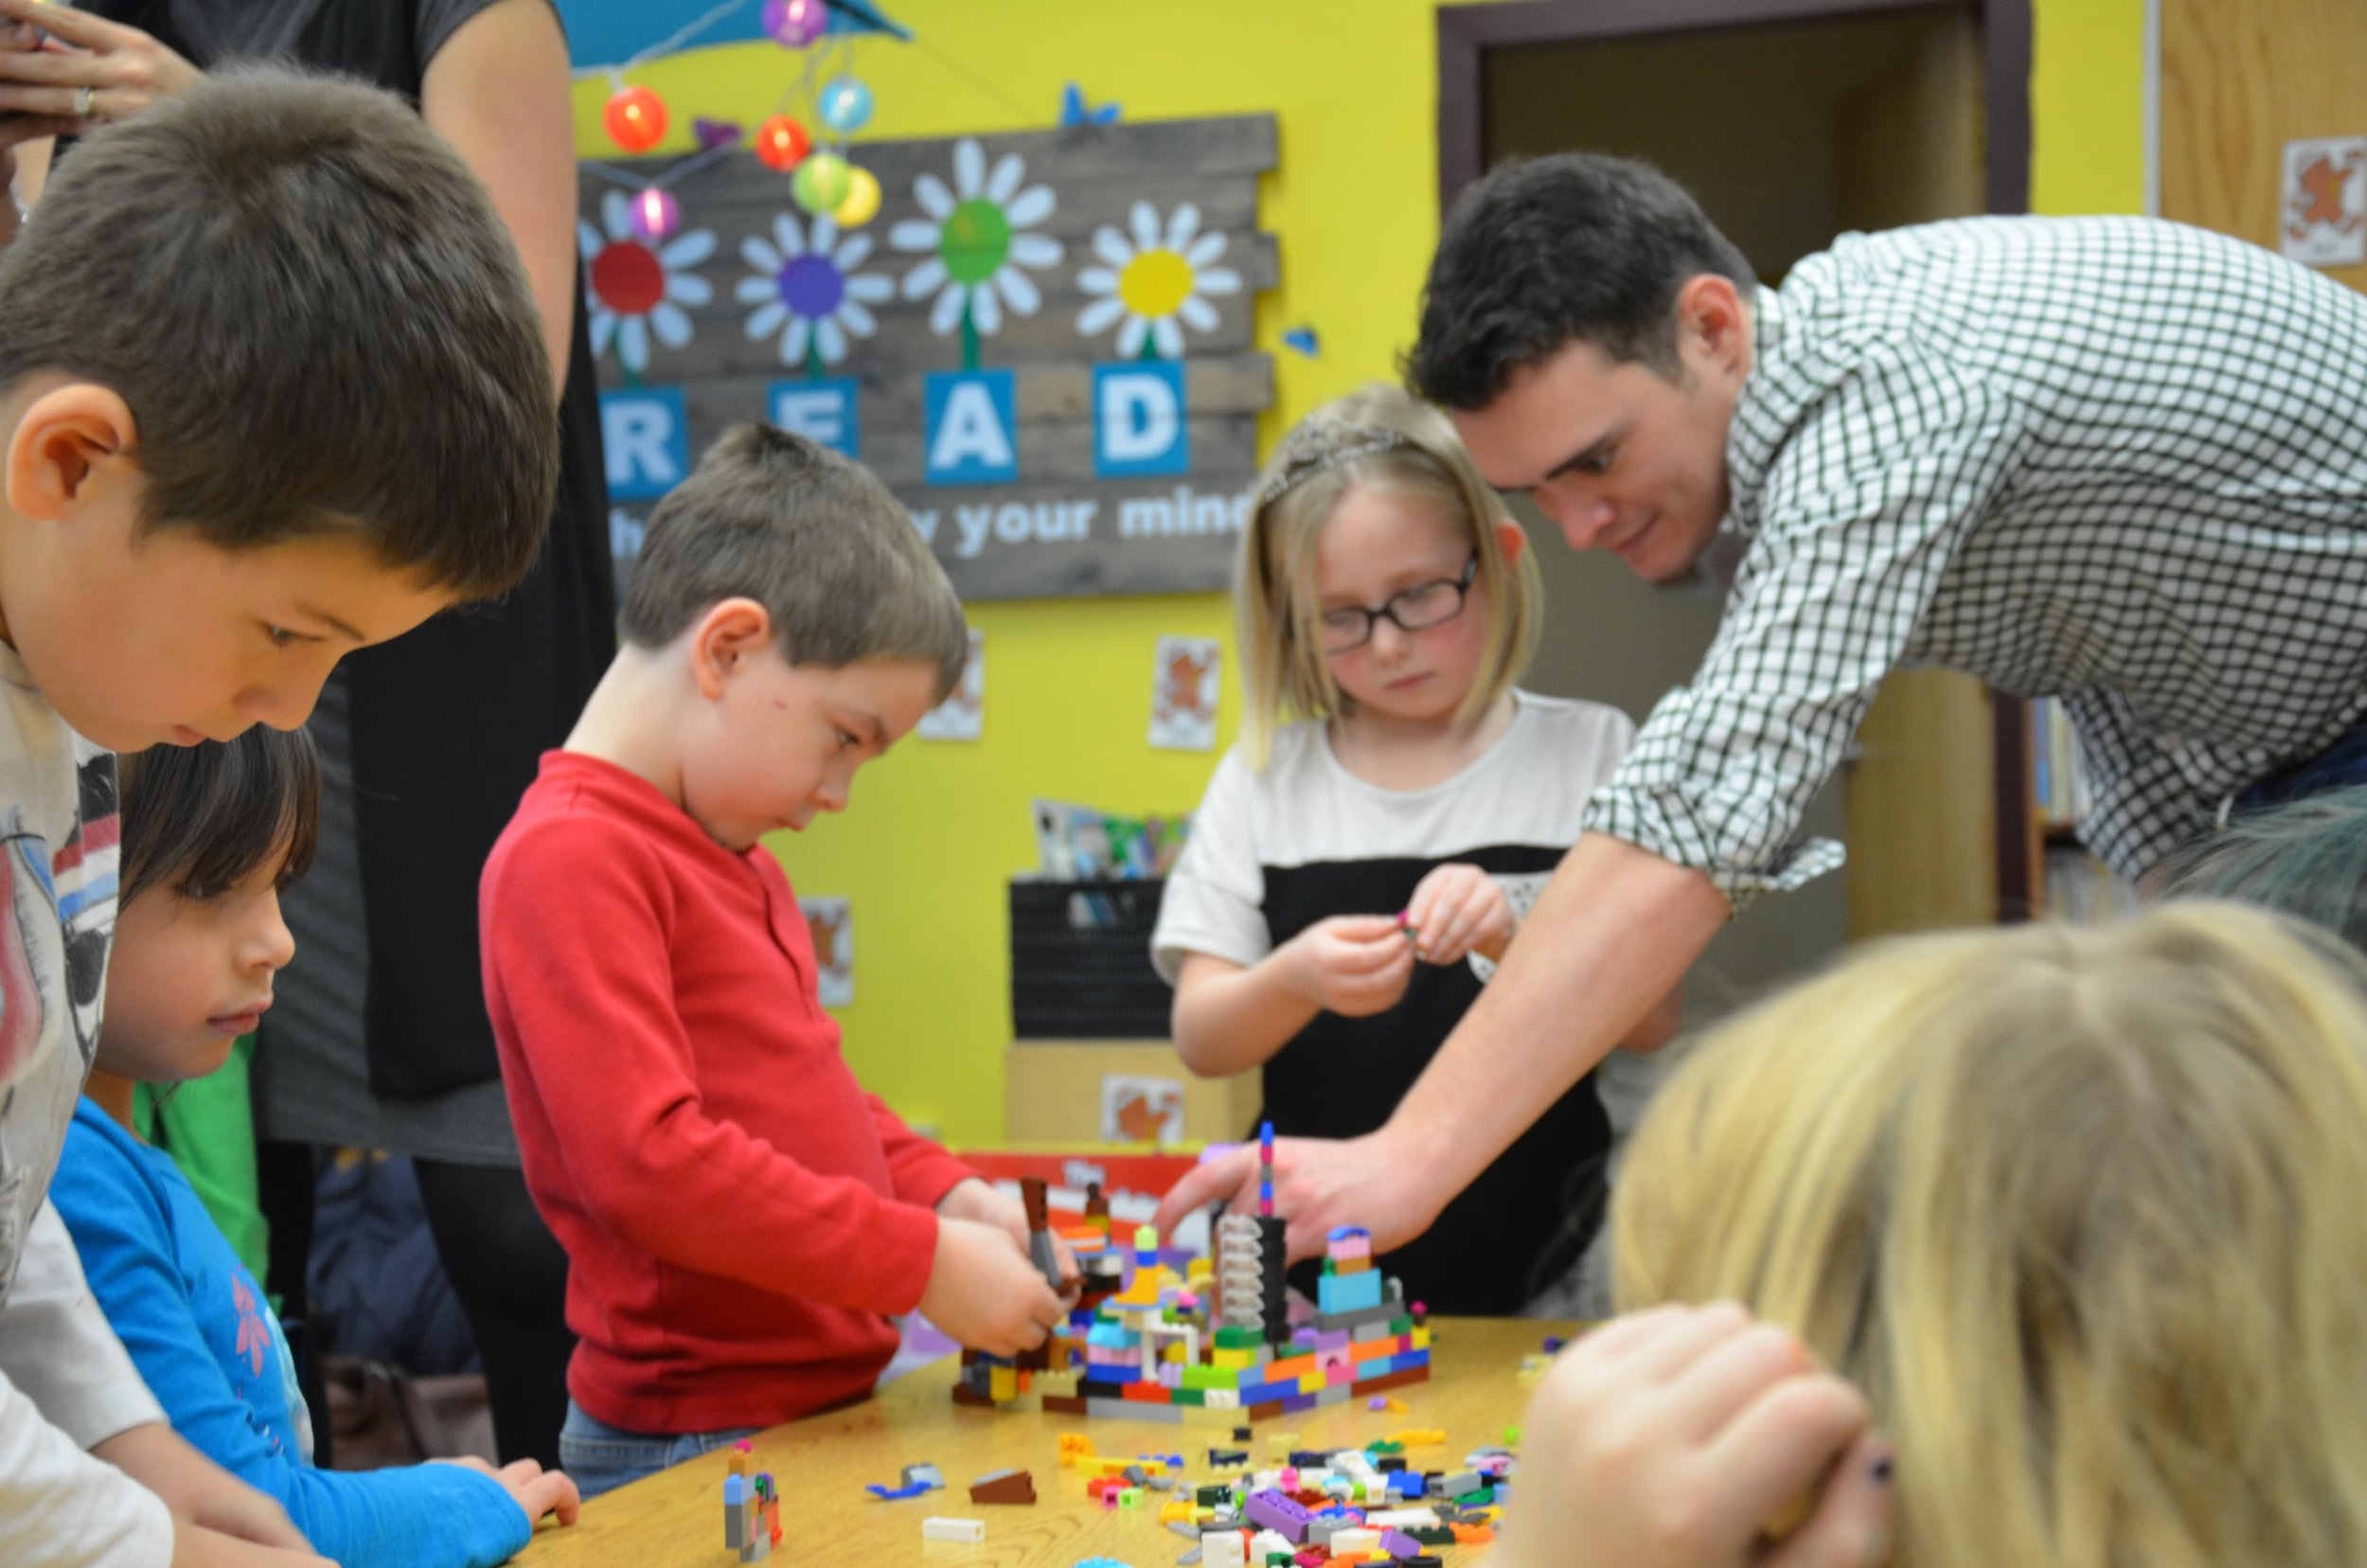 Architect Mitchell Borgen works with kids at a local elementary school to talk about planning. (Source: Jonathan Holth)